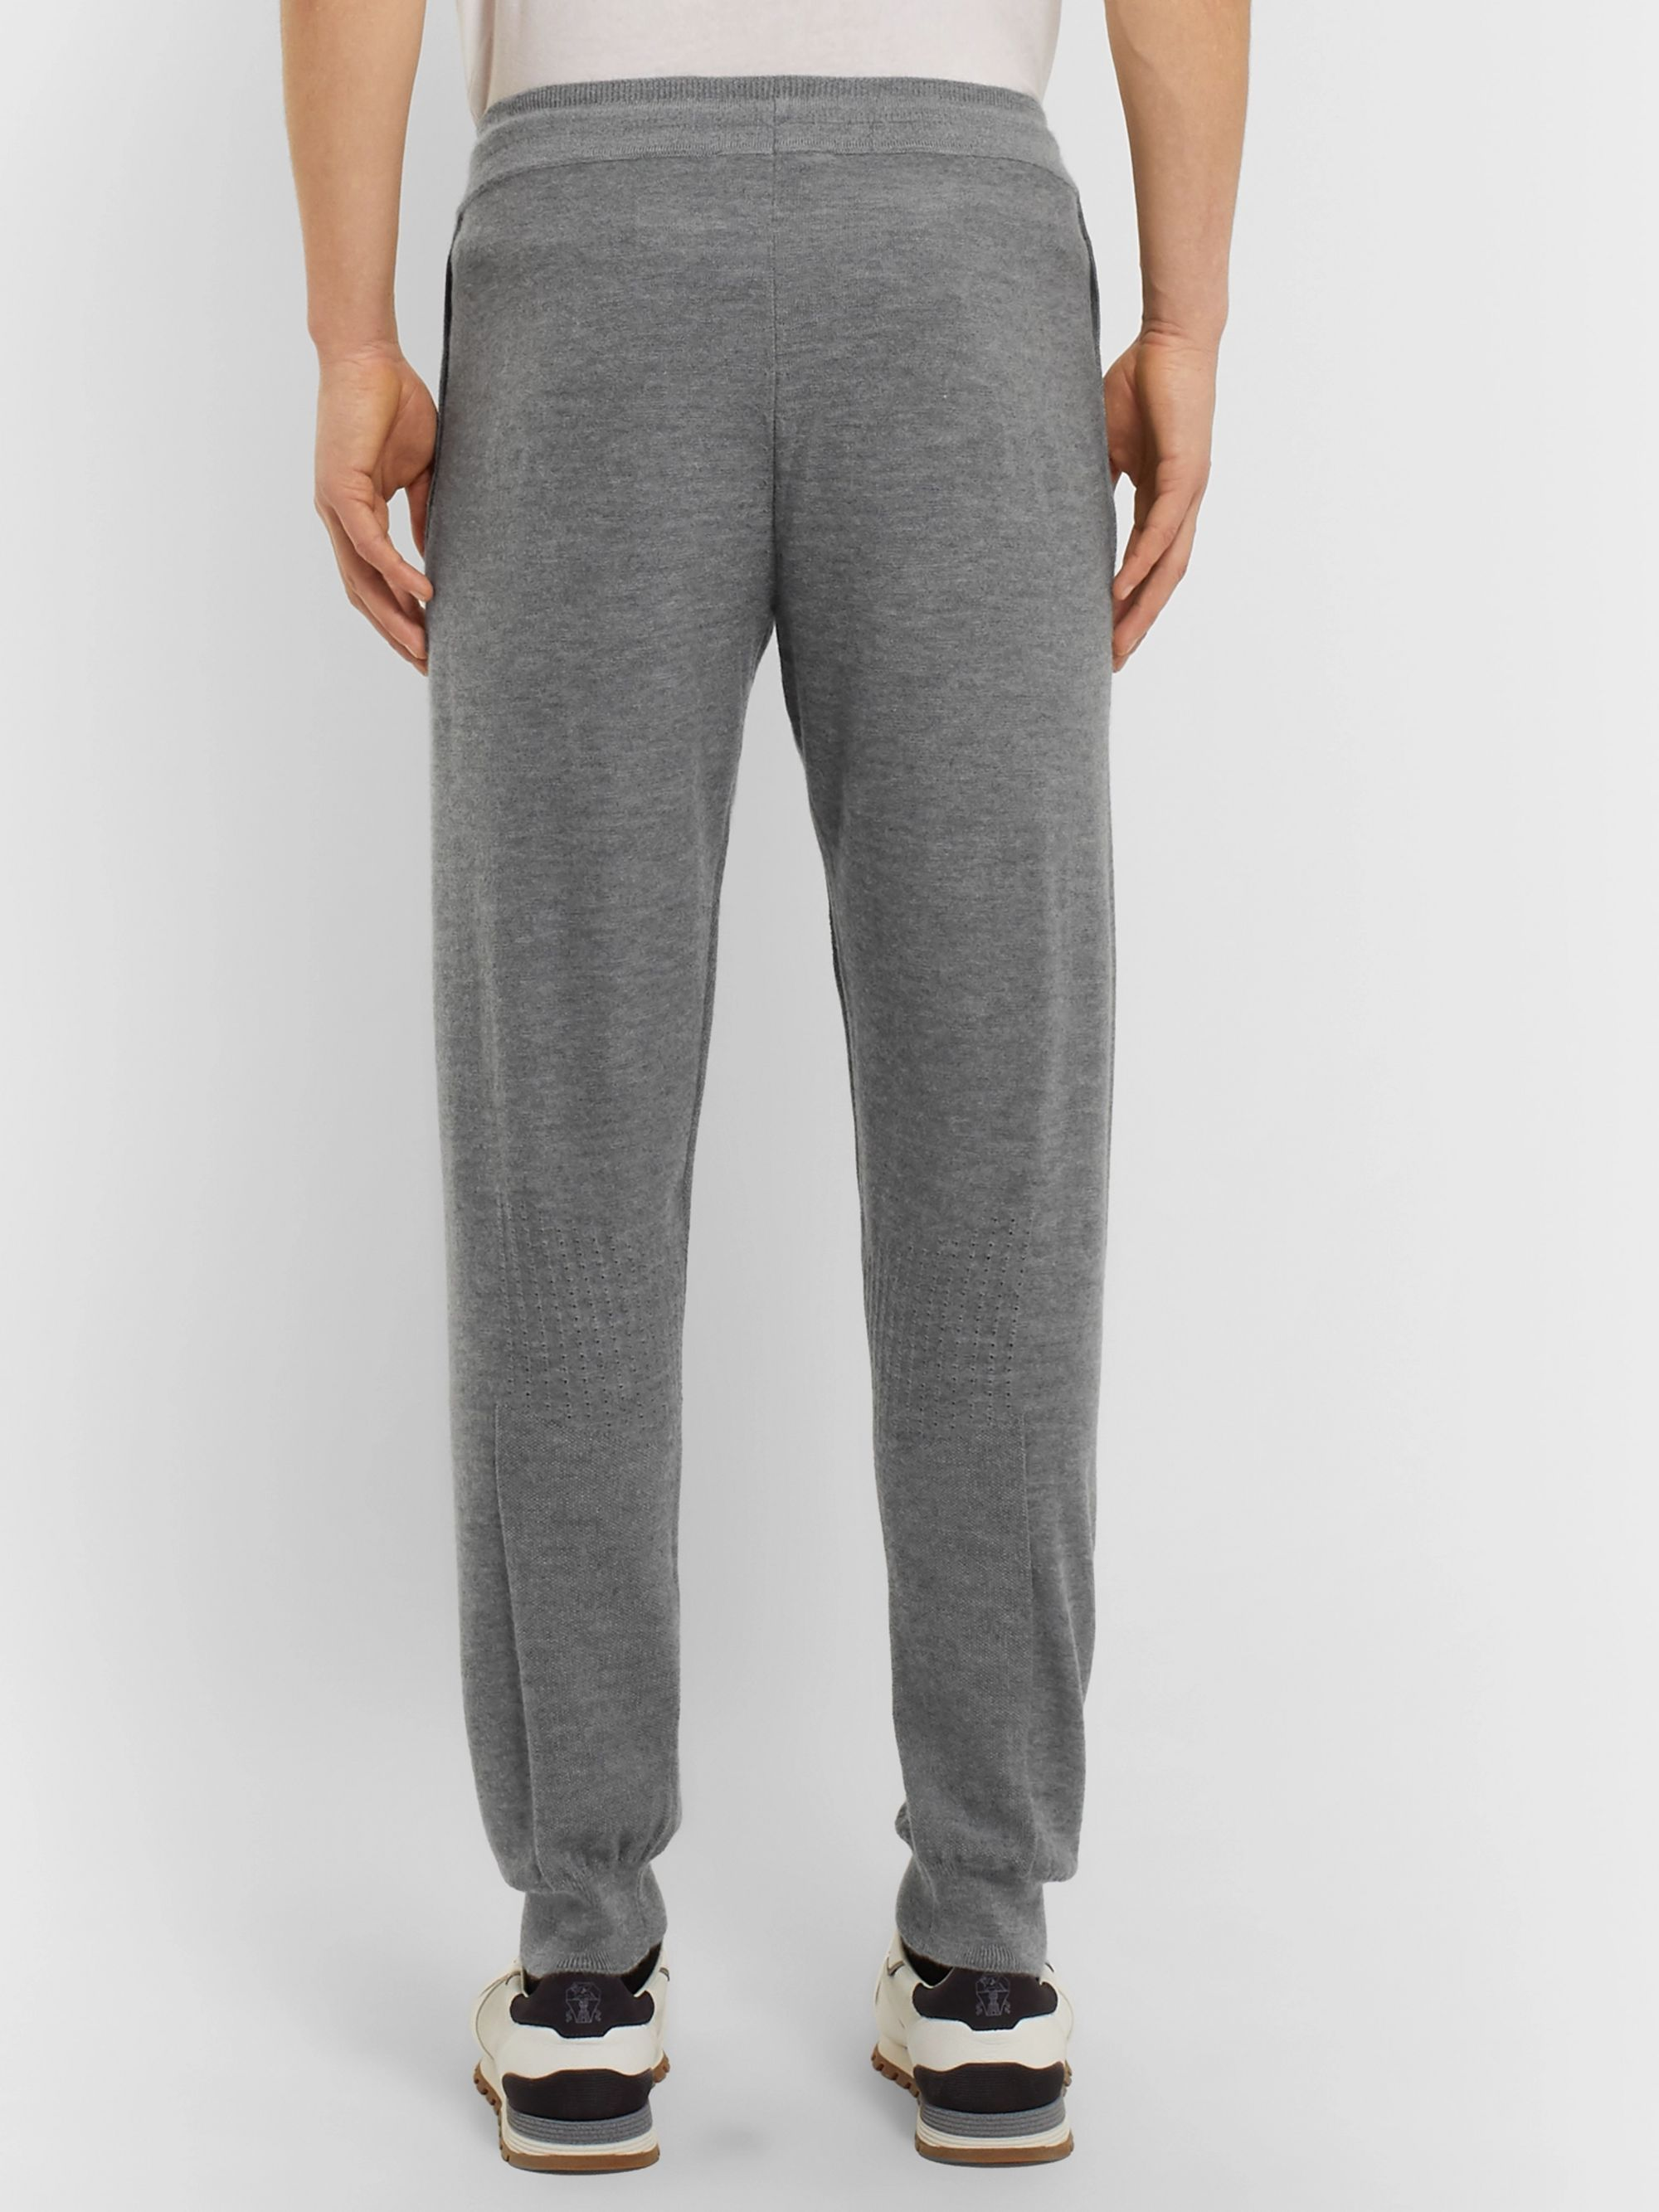 Ermenegildo Zegna Slim-Fit Tapered Cashmere Sweatpants